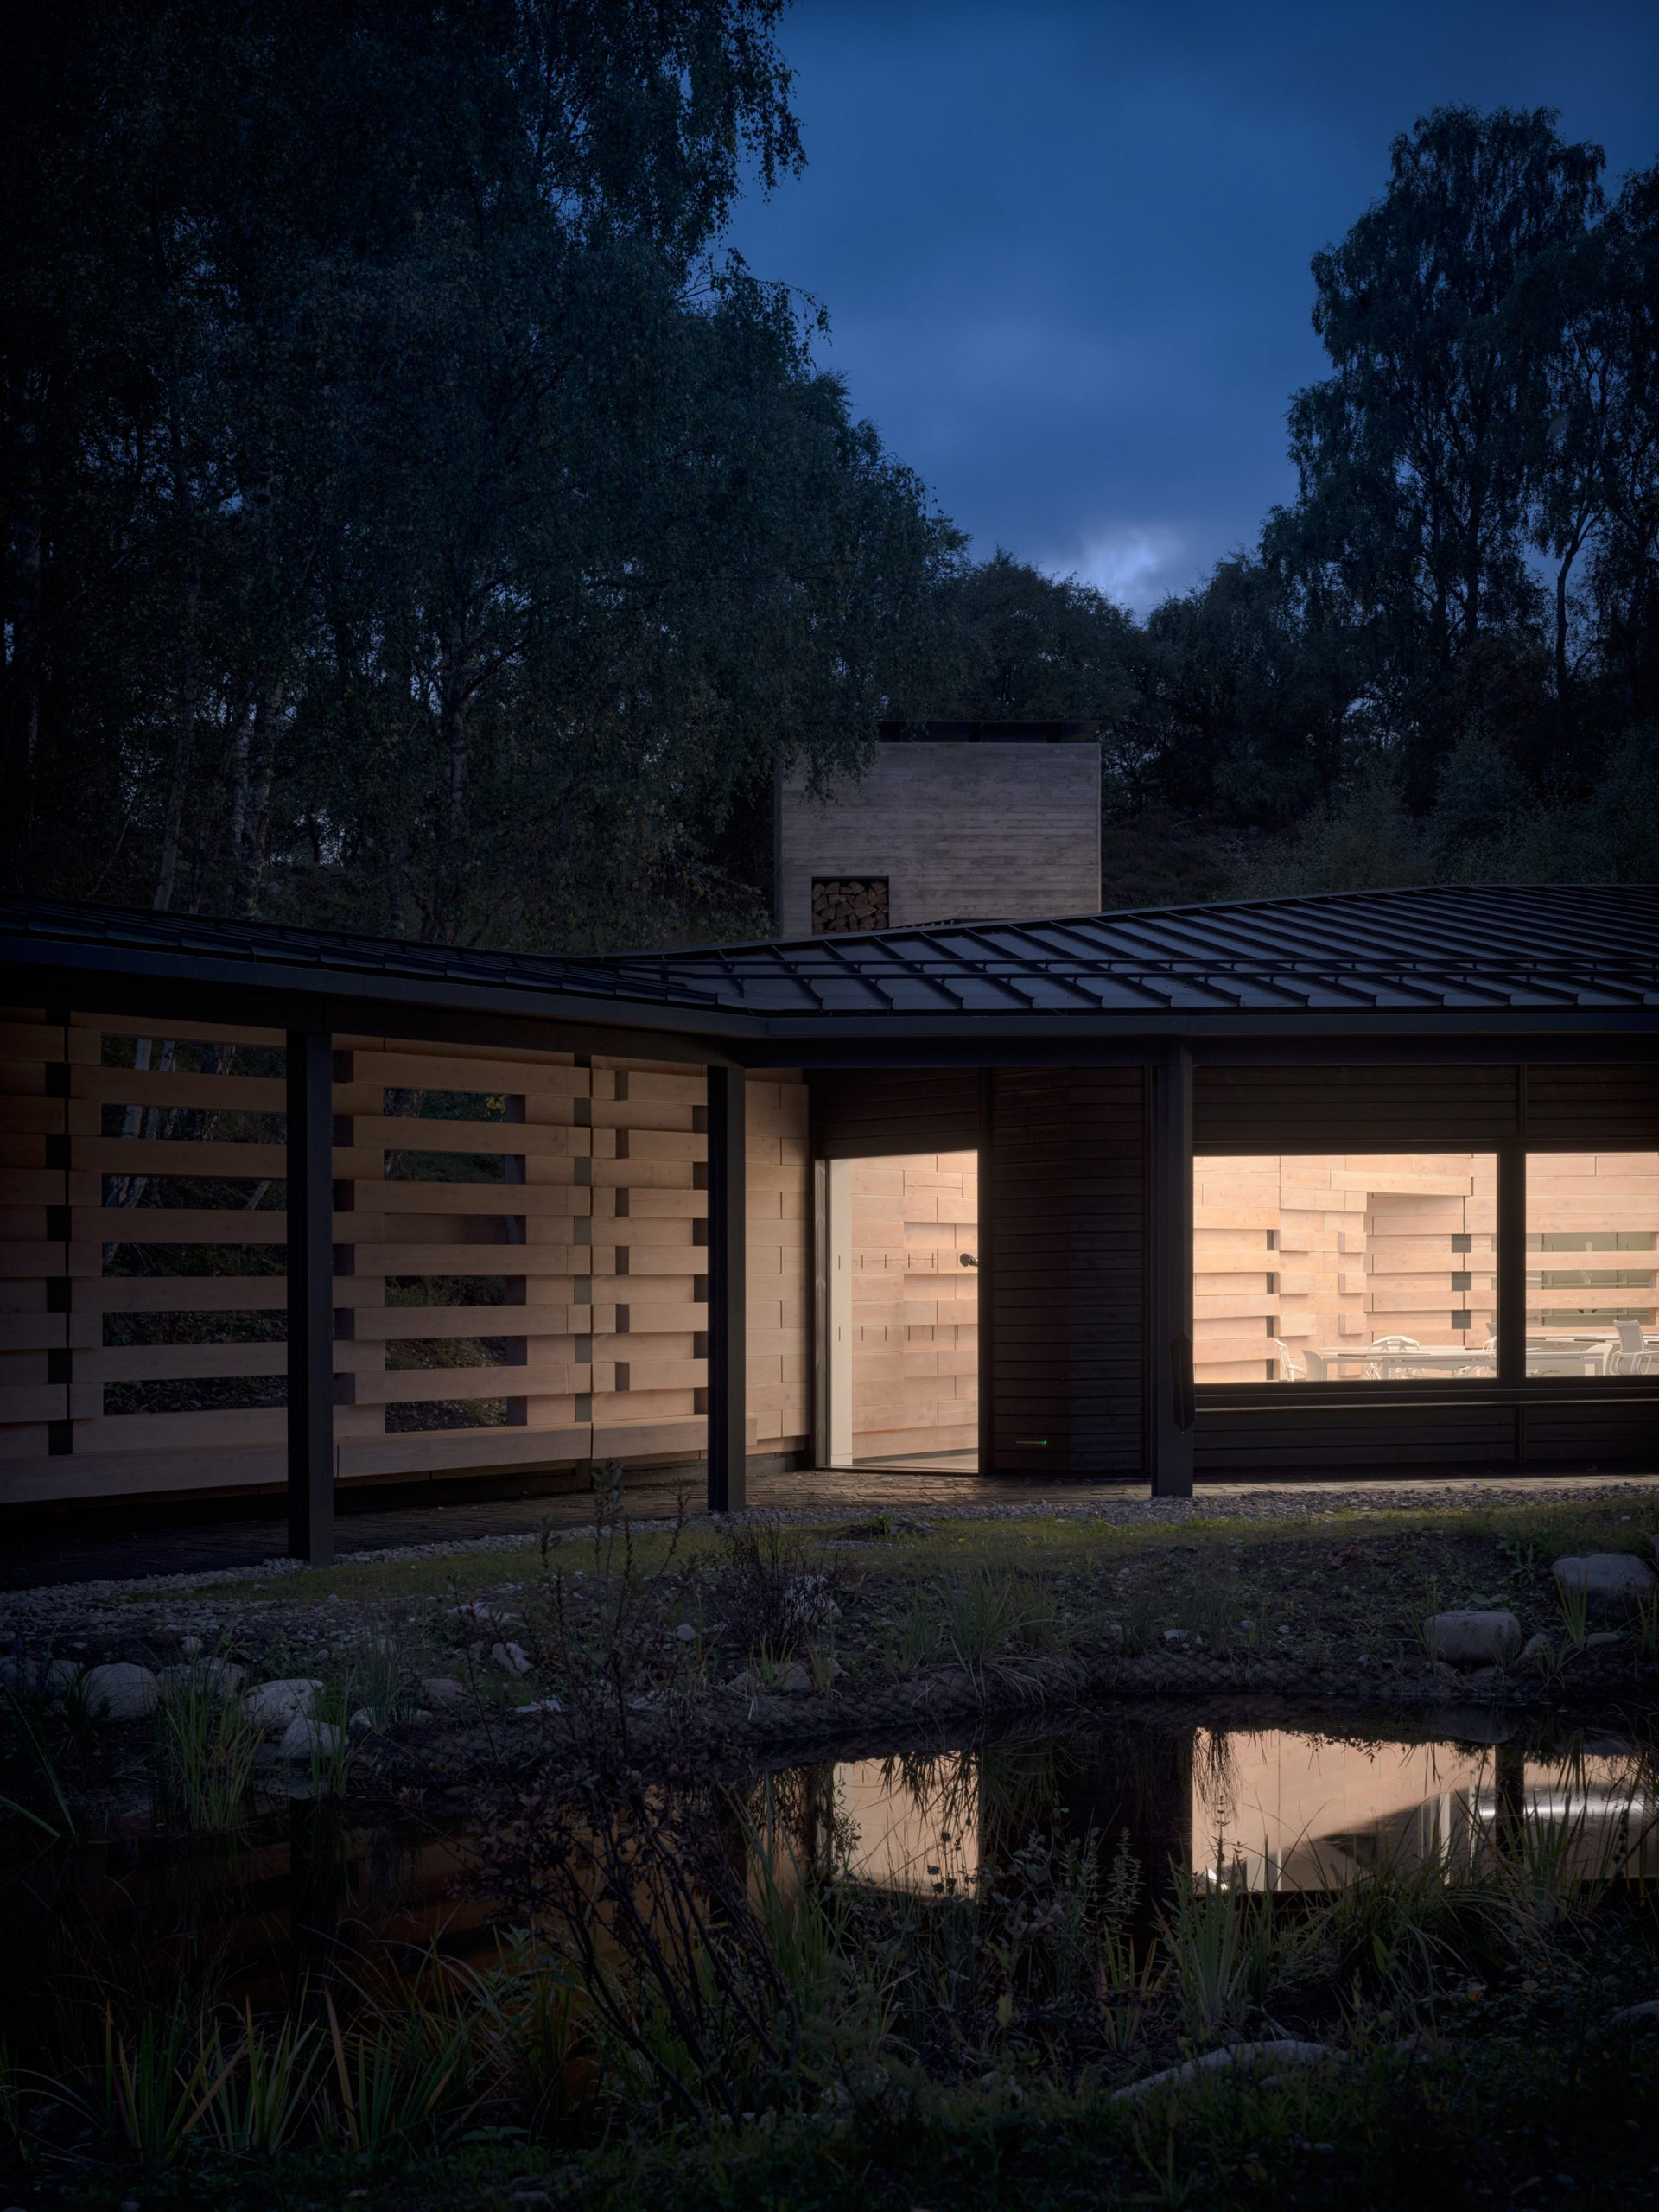 Night view of Quarry Studios by Moxon Architects